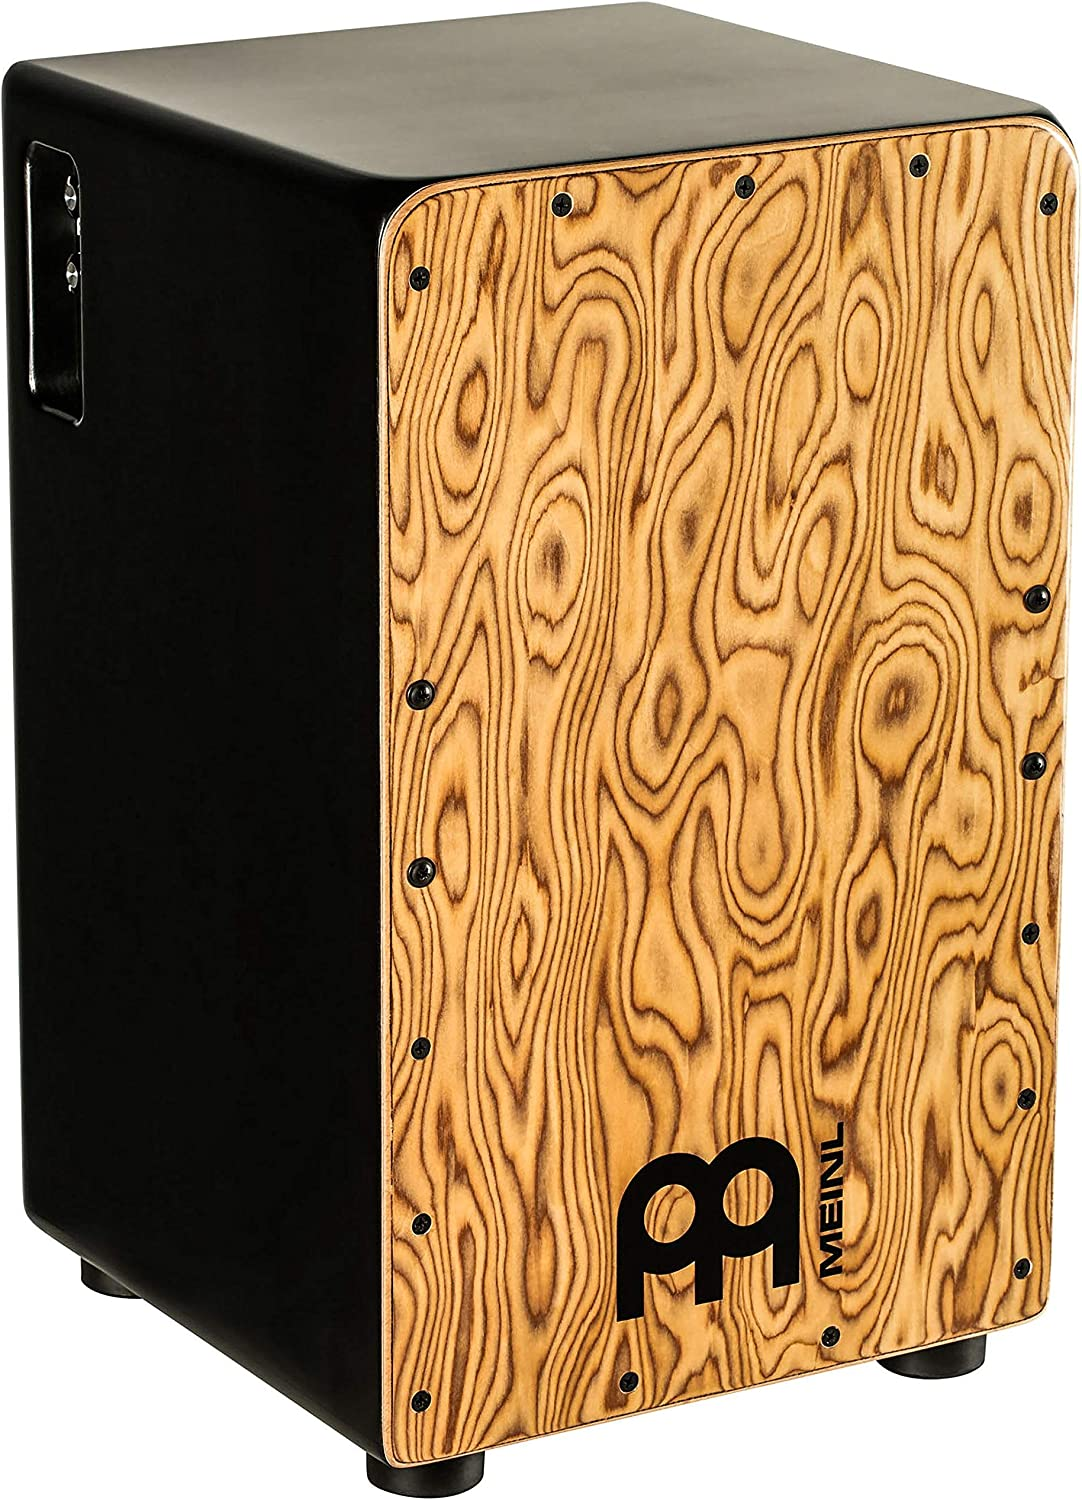 Meinl Pickup Cajon Box Drum with Internal Strings for Snare Effect - NOT MADE IN CHINA - Makah Burl Frontplate / Baltic Birch Body, Woodcraft Professional, 2-YEAR WARRANTY (PWCP100MB)